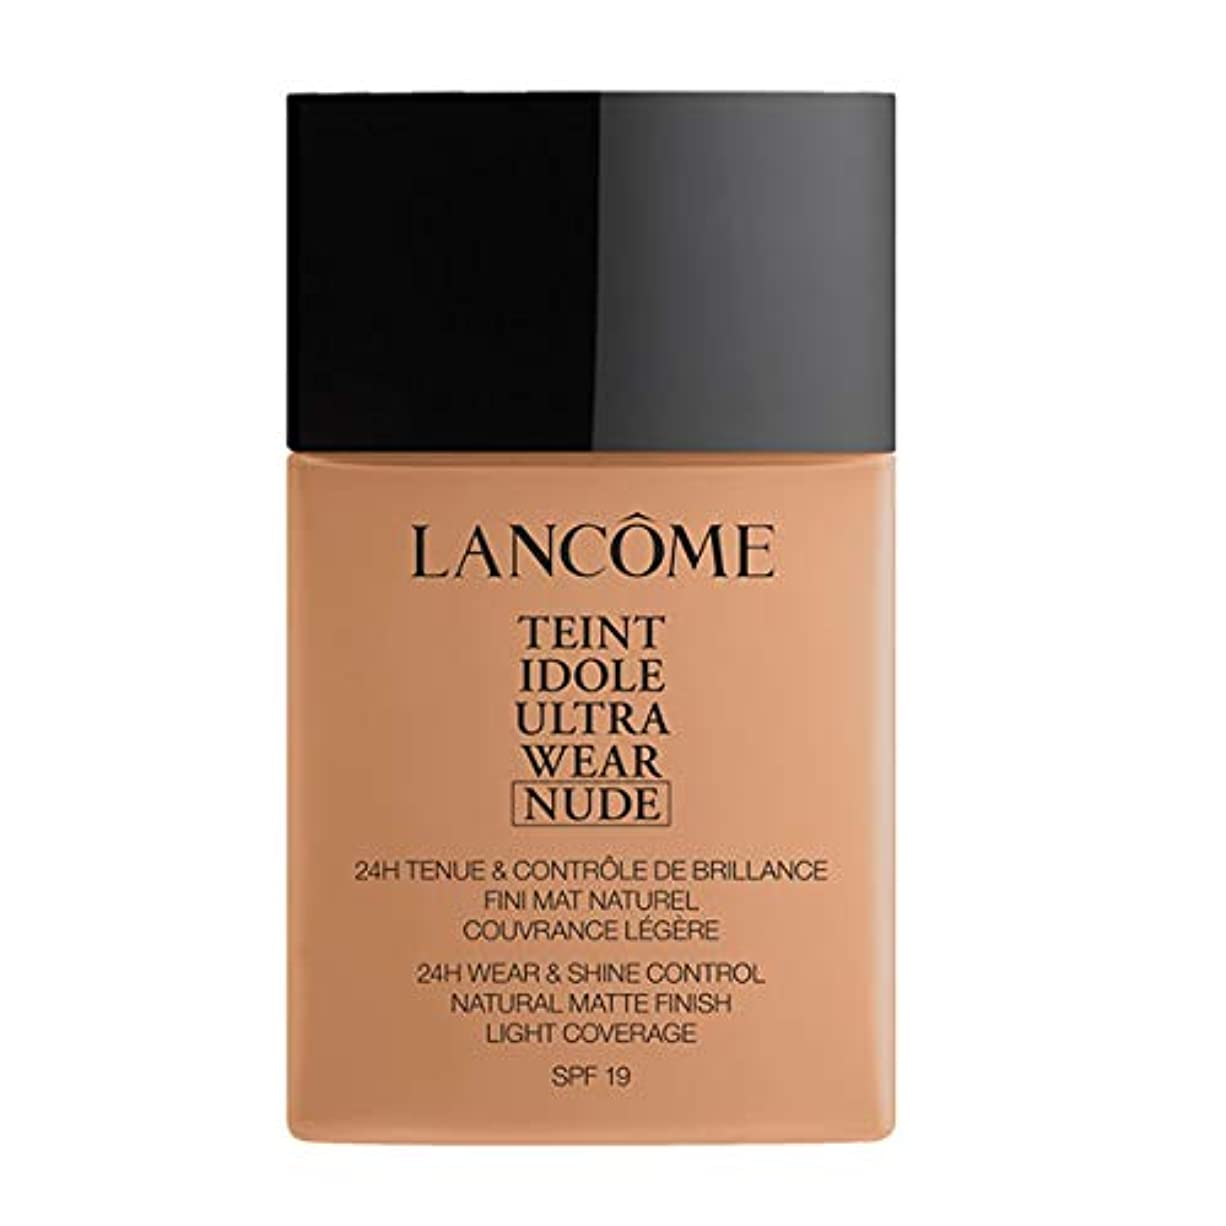 ハウス体真向こうランコム Teint Idole Ultra Wear Nude Foundation SPF19 - # 035 Beige Dore 40ml/1.3oz並行輸入品